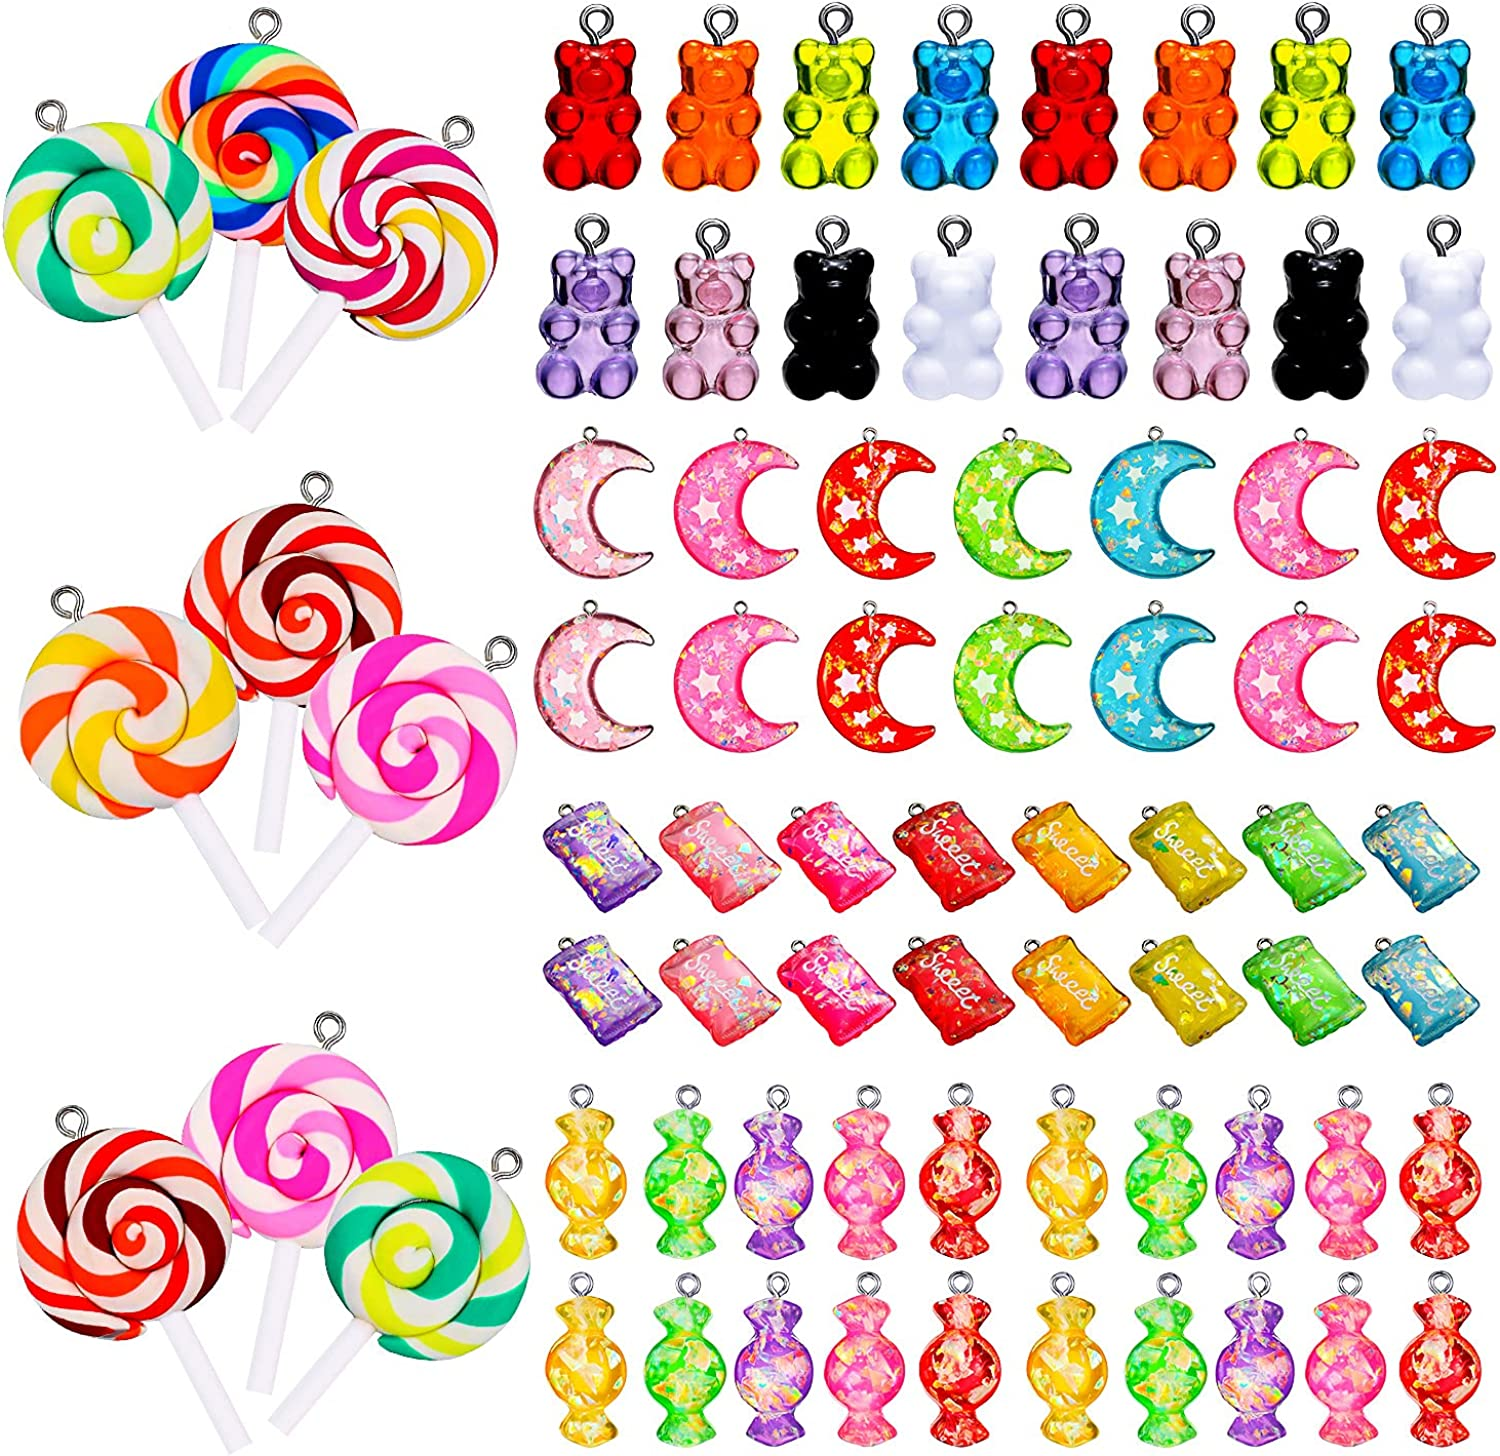 80 Pieces Colorful Candy Pendants Pendant Charms At Over item handling ☆ the price of surprise Jewelry